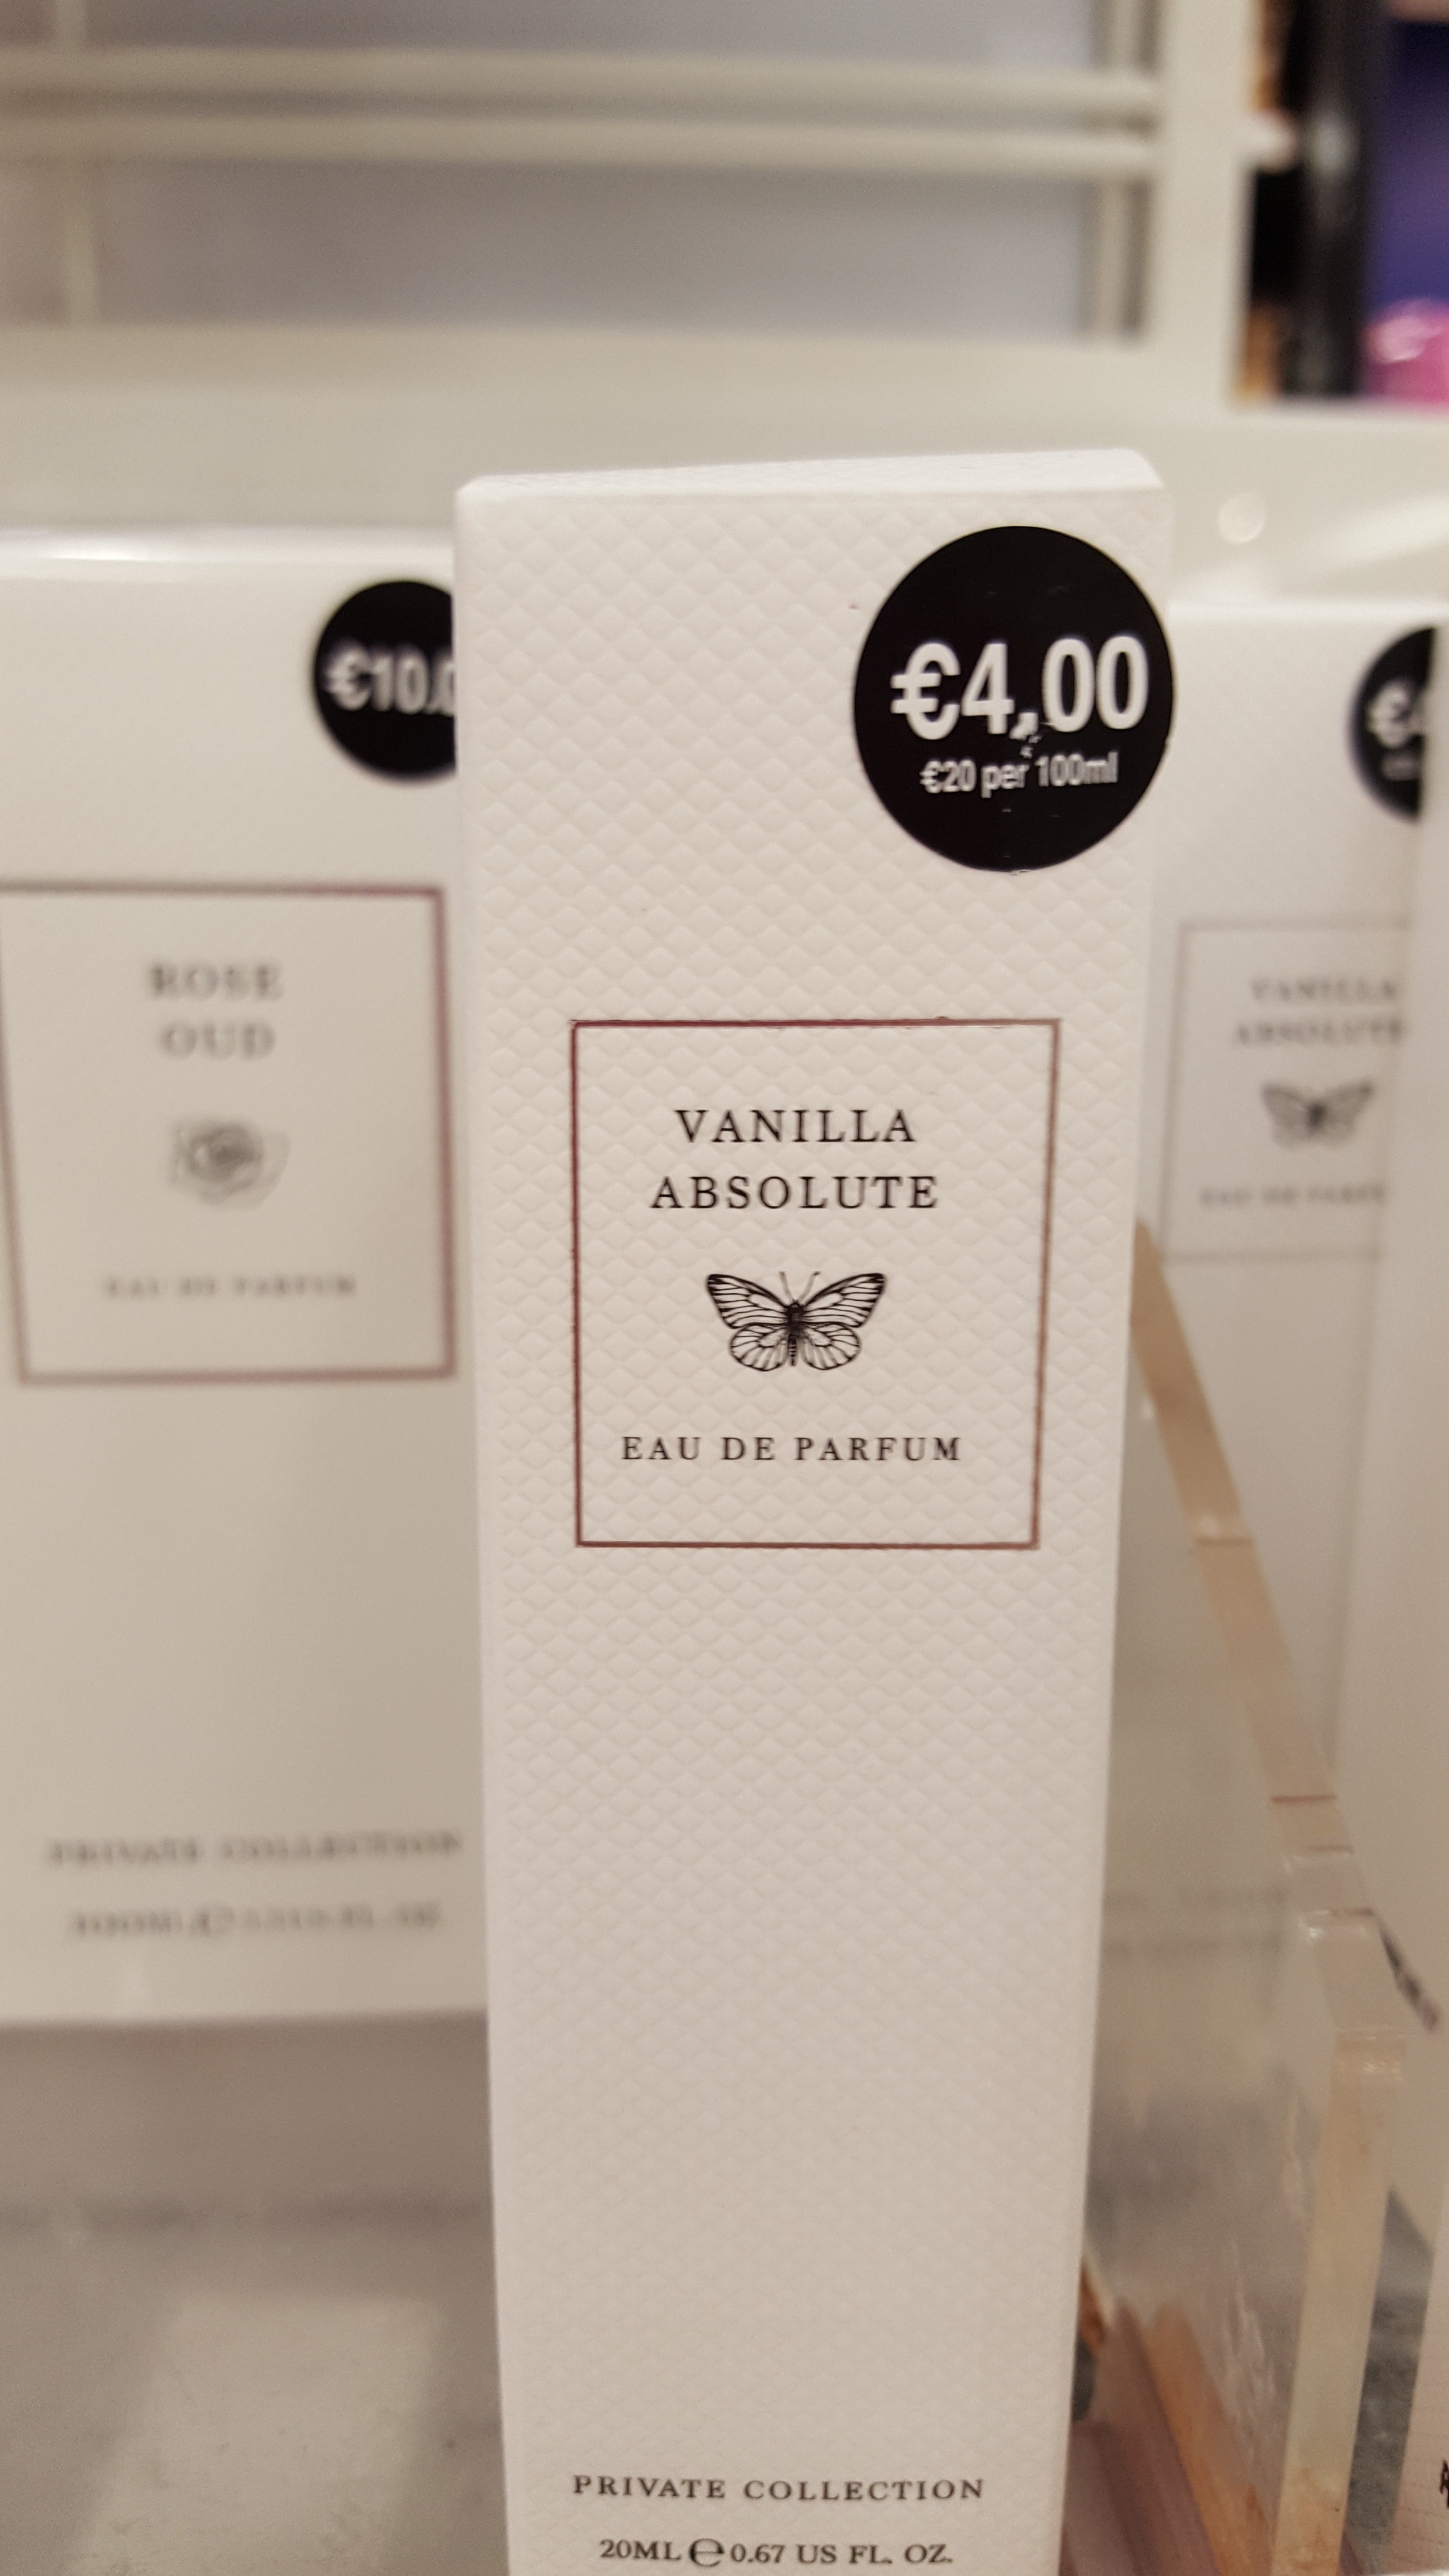 This dreamy vanilla perfume in handbag size will save you using your fancy stuff midweek.